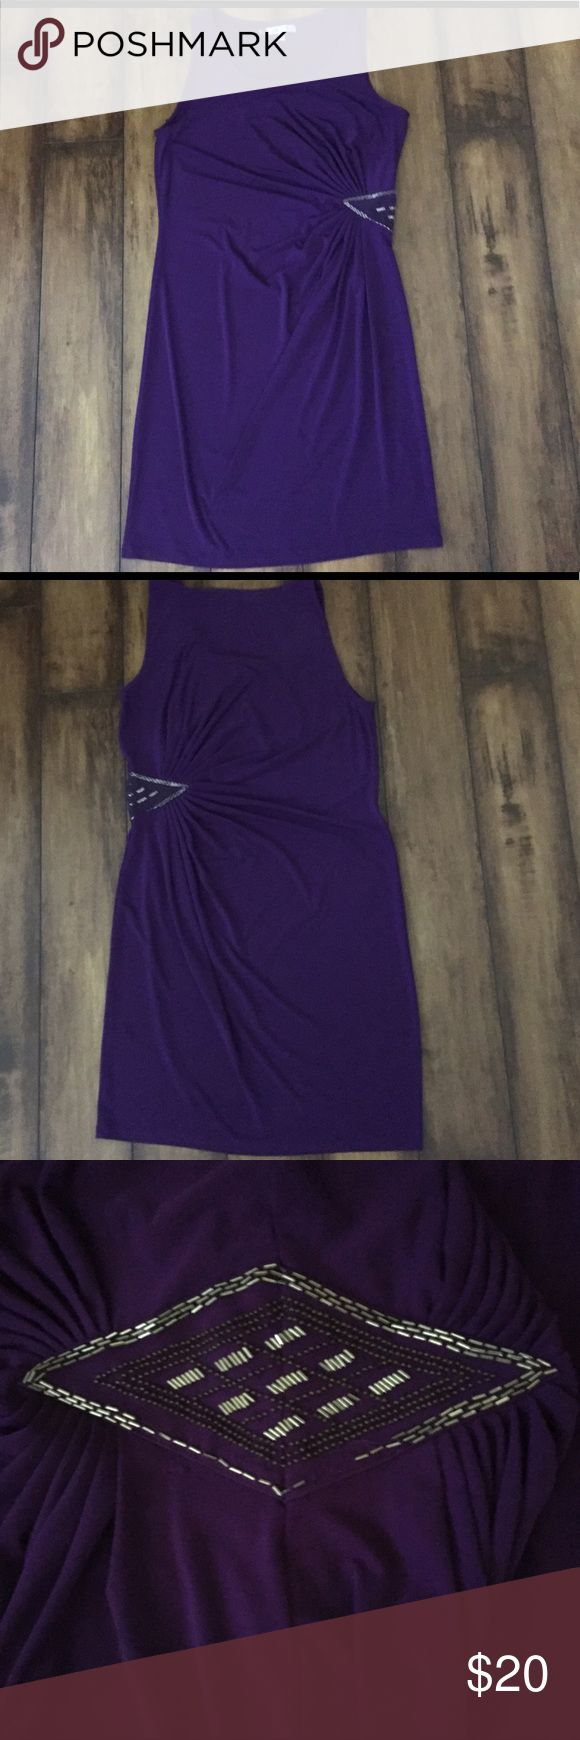 JENNIFER LOPEZ CLINGY DRESS WITH SEQUINS Pretty purple colored sleeveless clingy dress with a beautiful sequin father at waist. Some of the sequins are missing as shown in pictures, price reflects thus flaw. Jennifer Lopez Dresses Mini